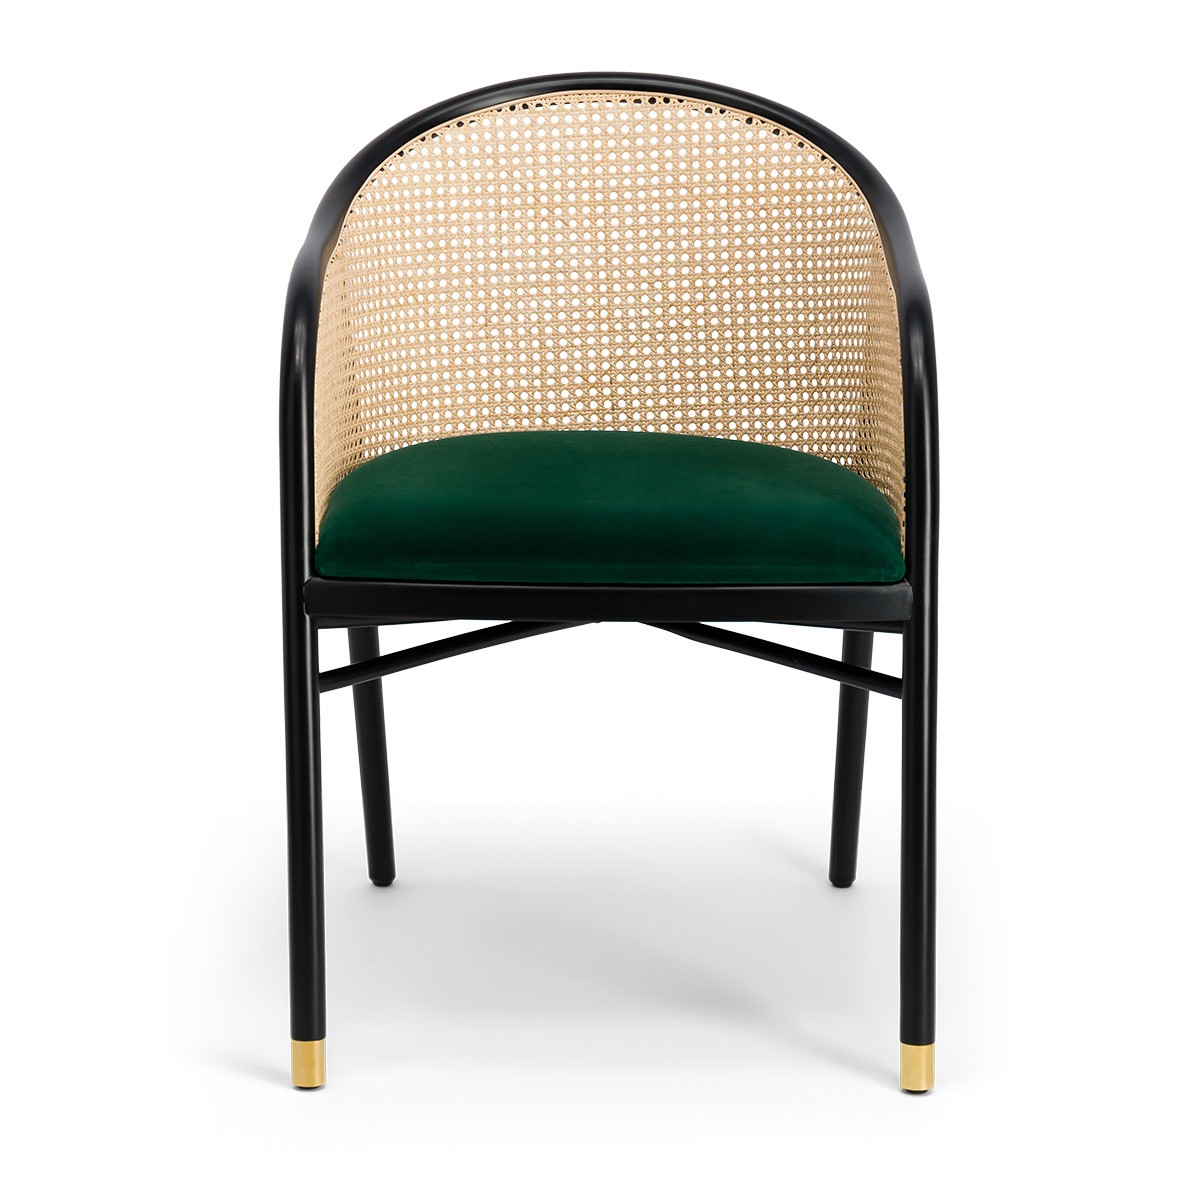 Cavallo Armchair, Fir Green Velvet with Black Lacquered Frame